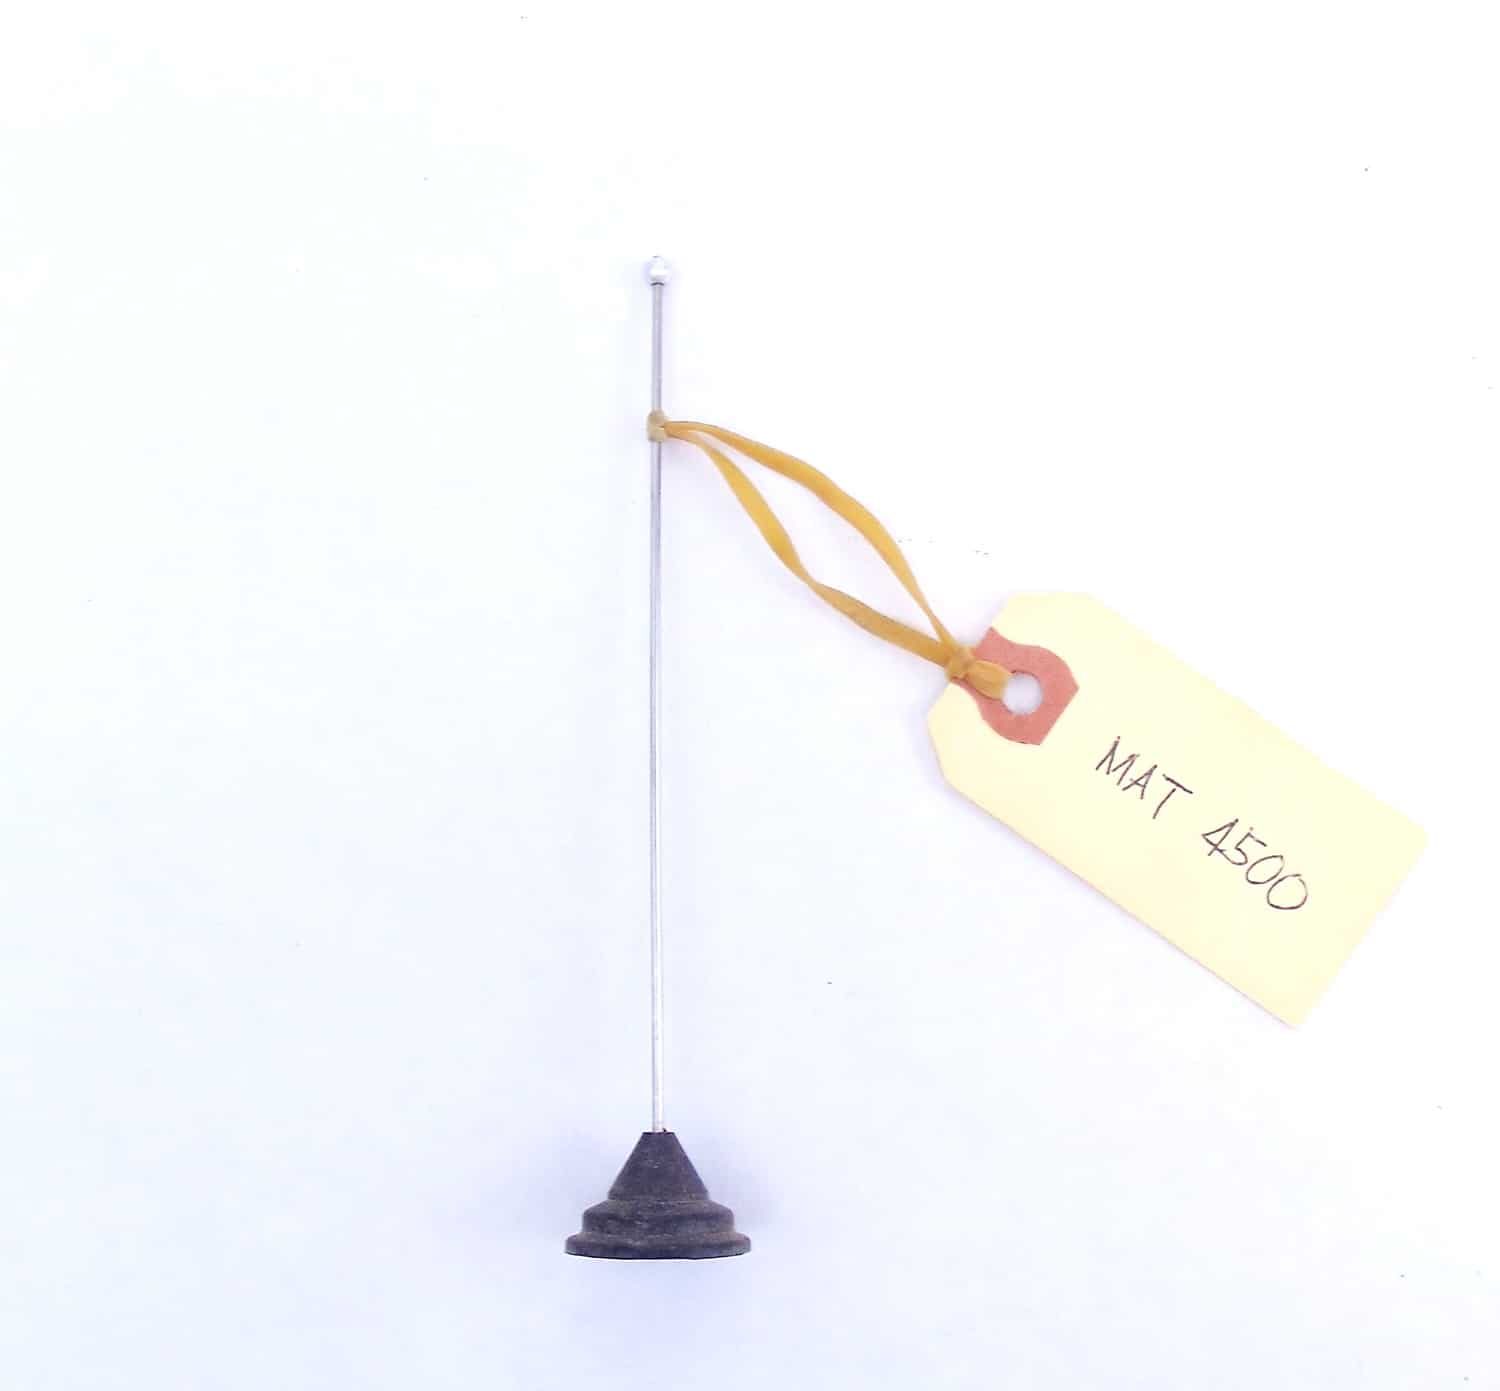 MAT4500 - Maxrad 450-460 Mhz1 /4 Wave Replacement Rod